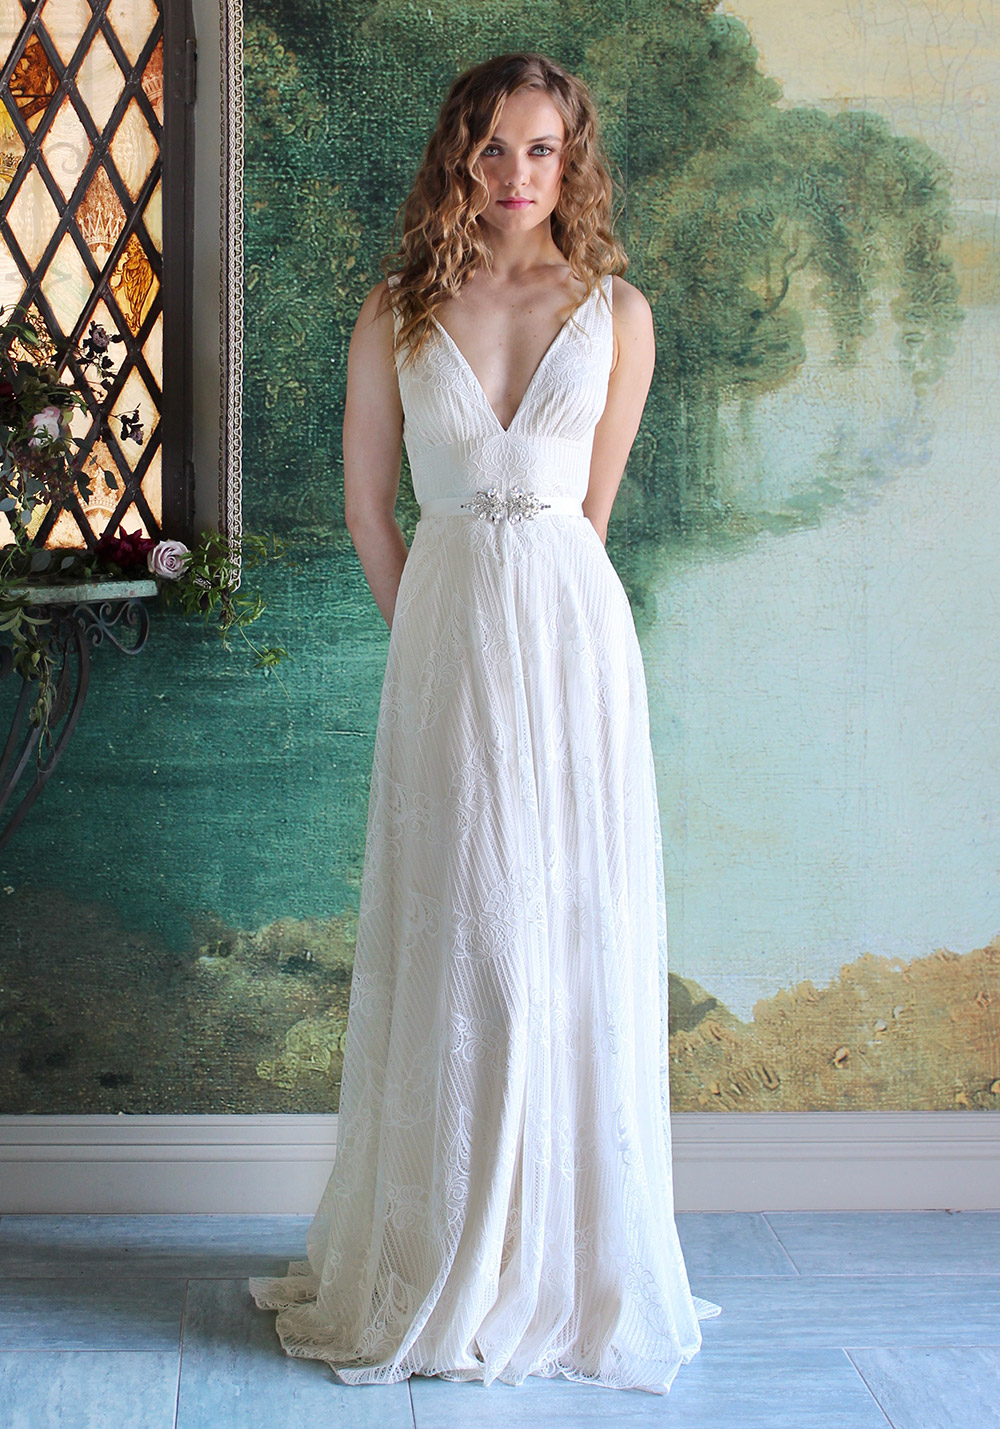 Virginia - Romantique 2016 Collection. www.theweddingnotebook.com